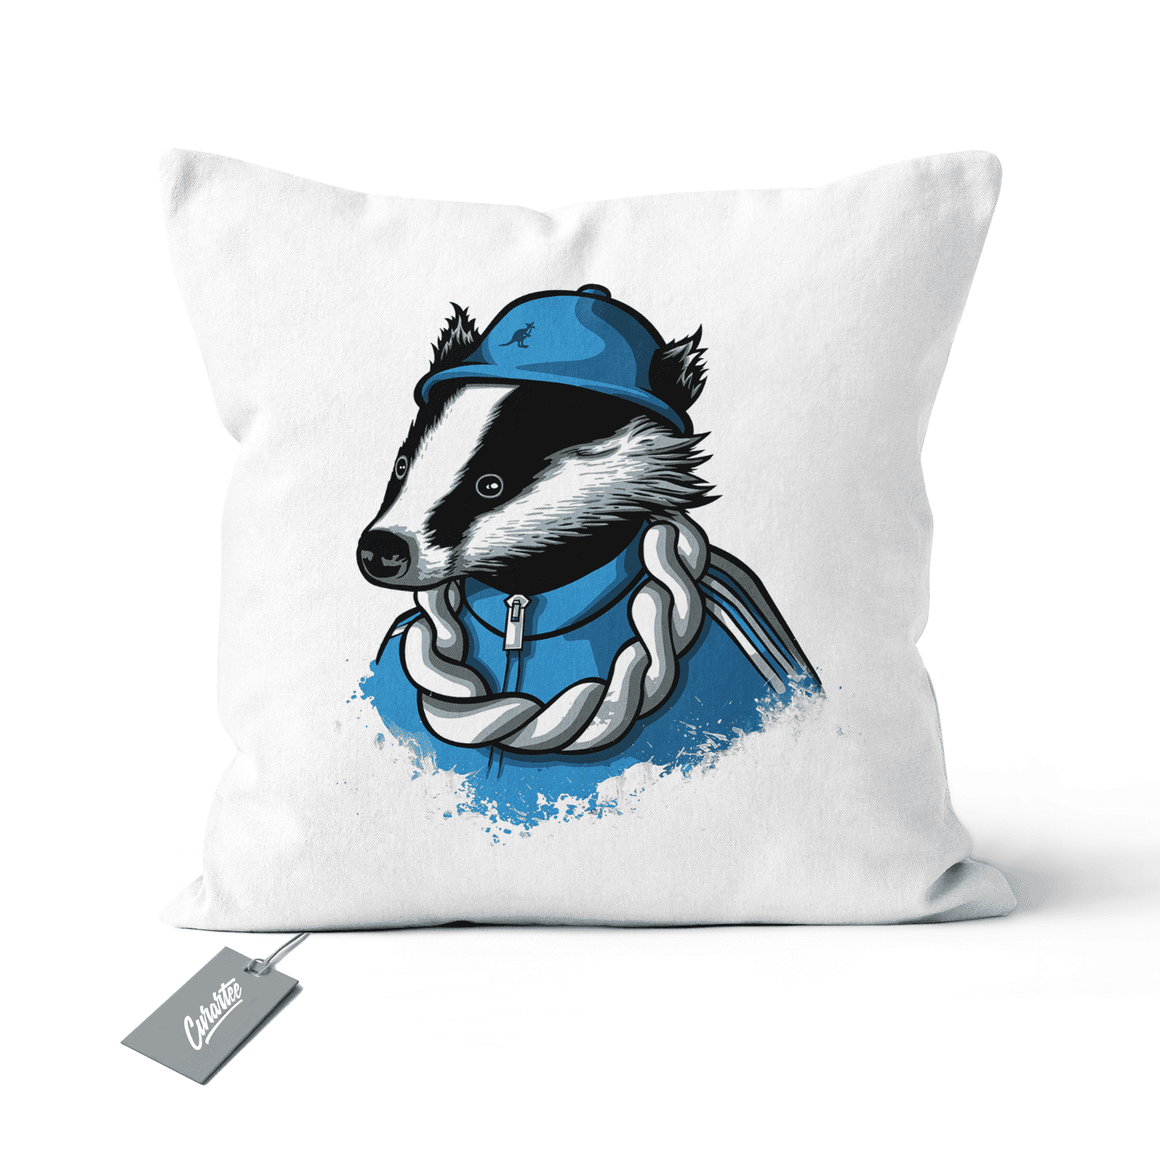 B-Boy Badger Cushion - Premium Artwear Curartee